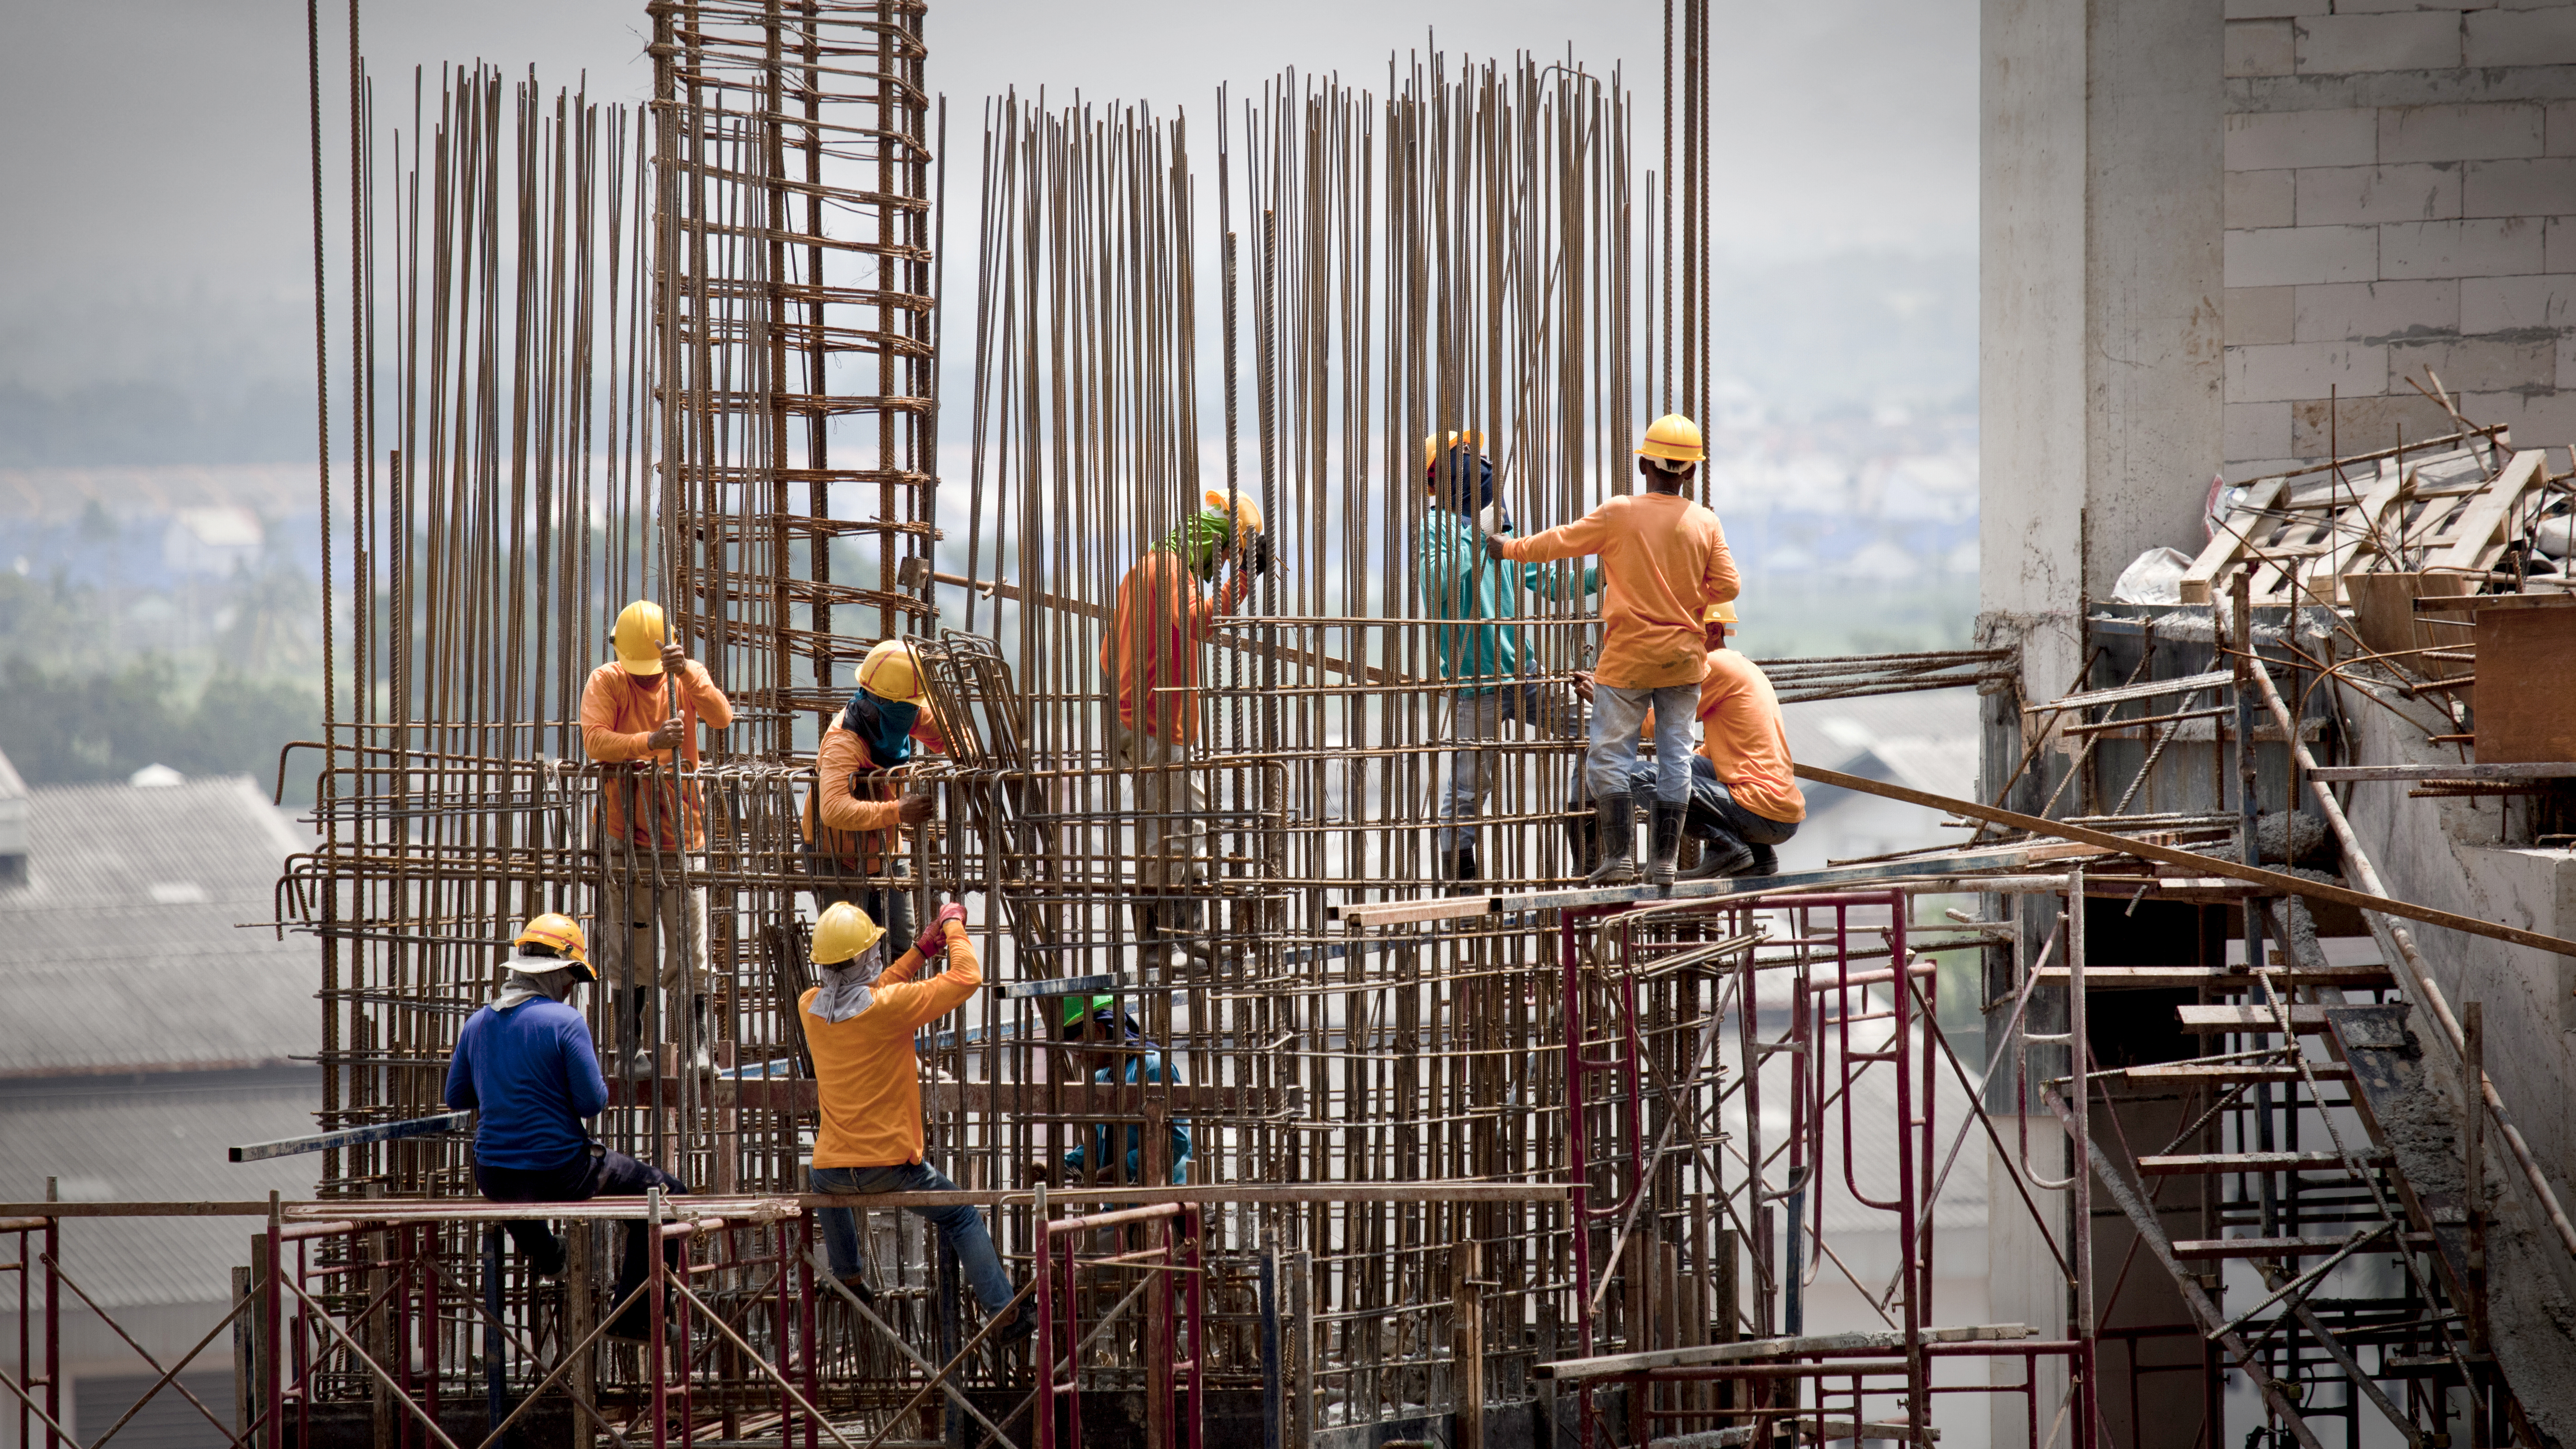 Migrant Workers in Qatar and the UAE | Business & Human Rights